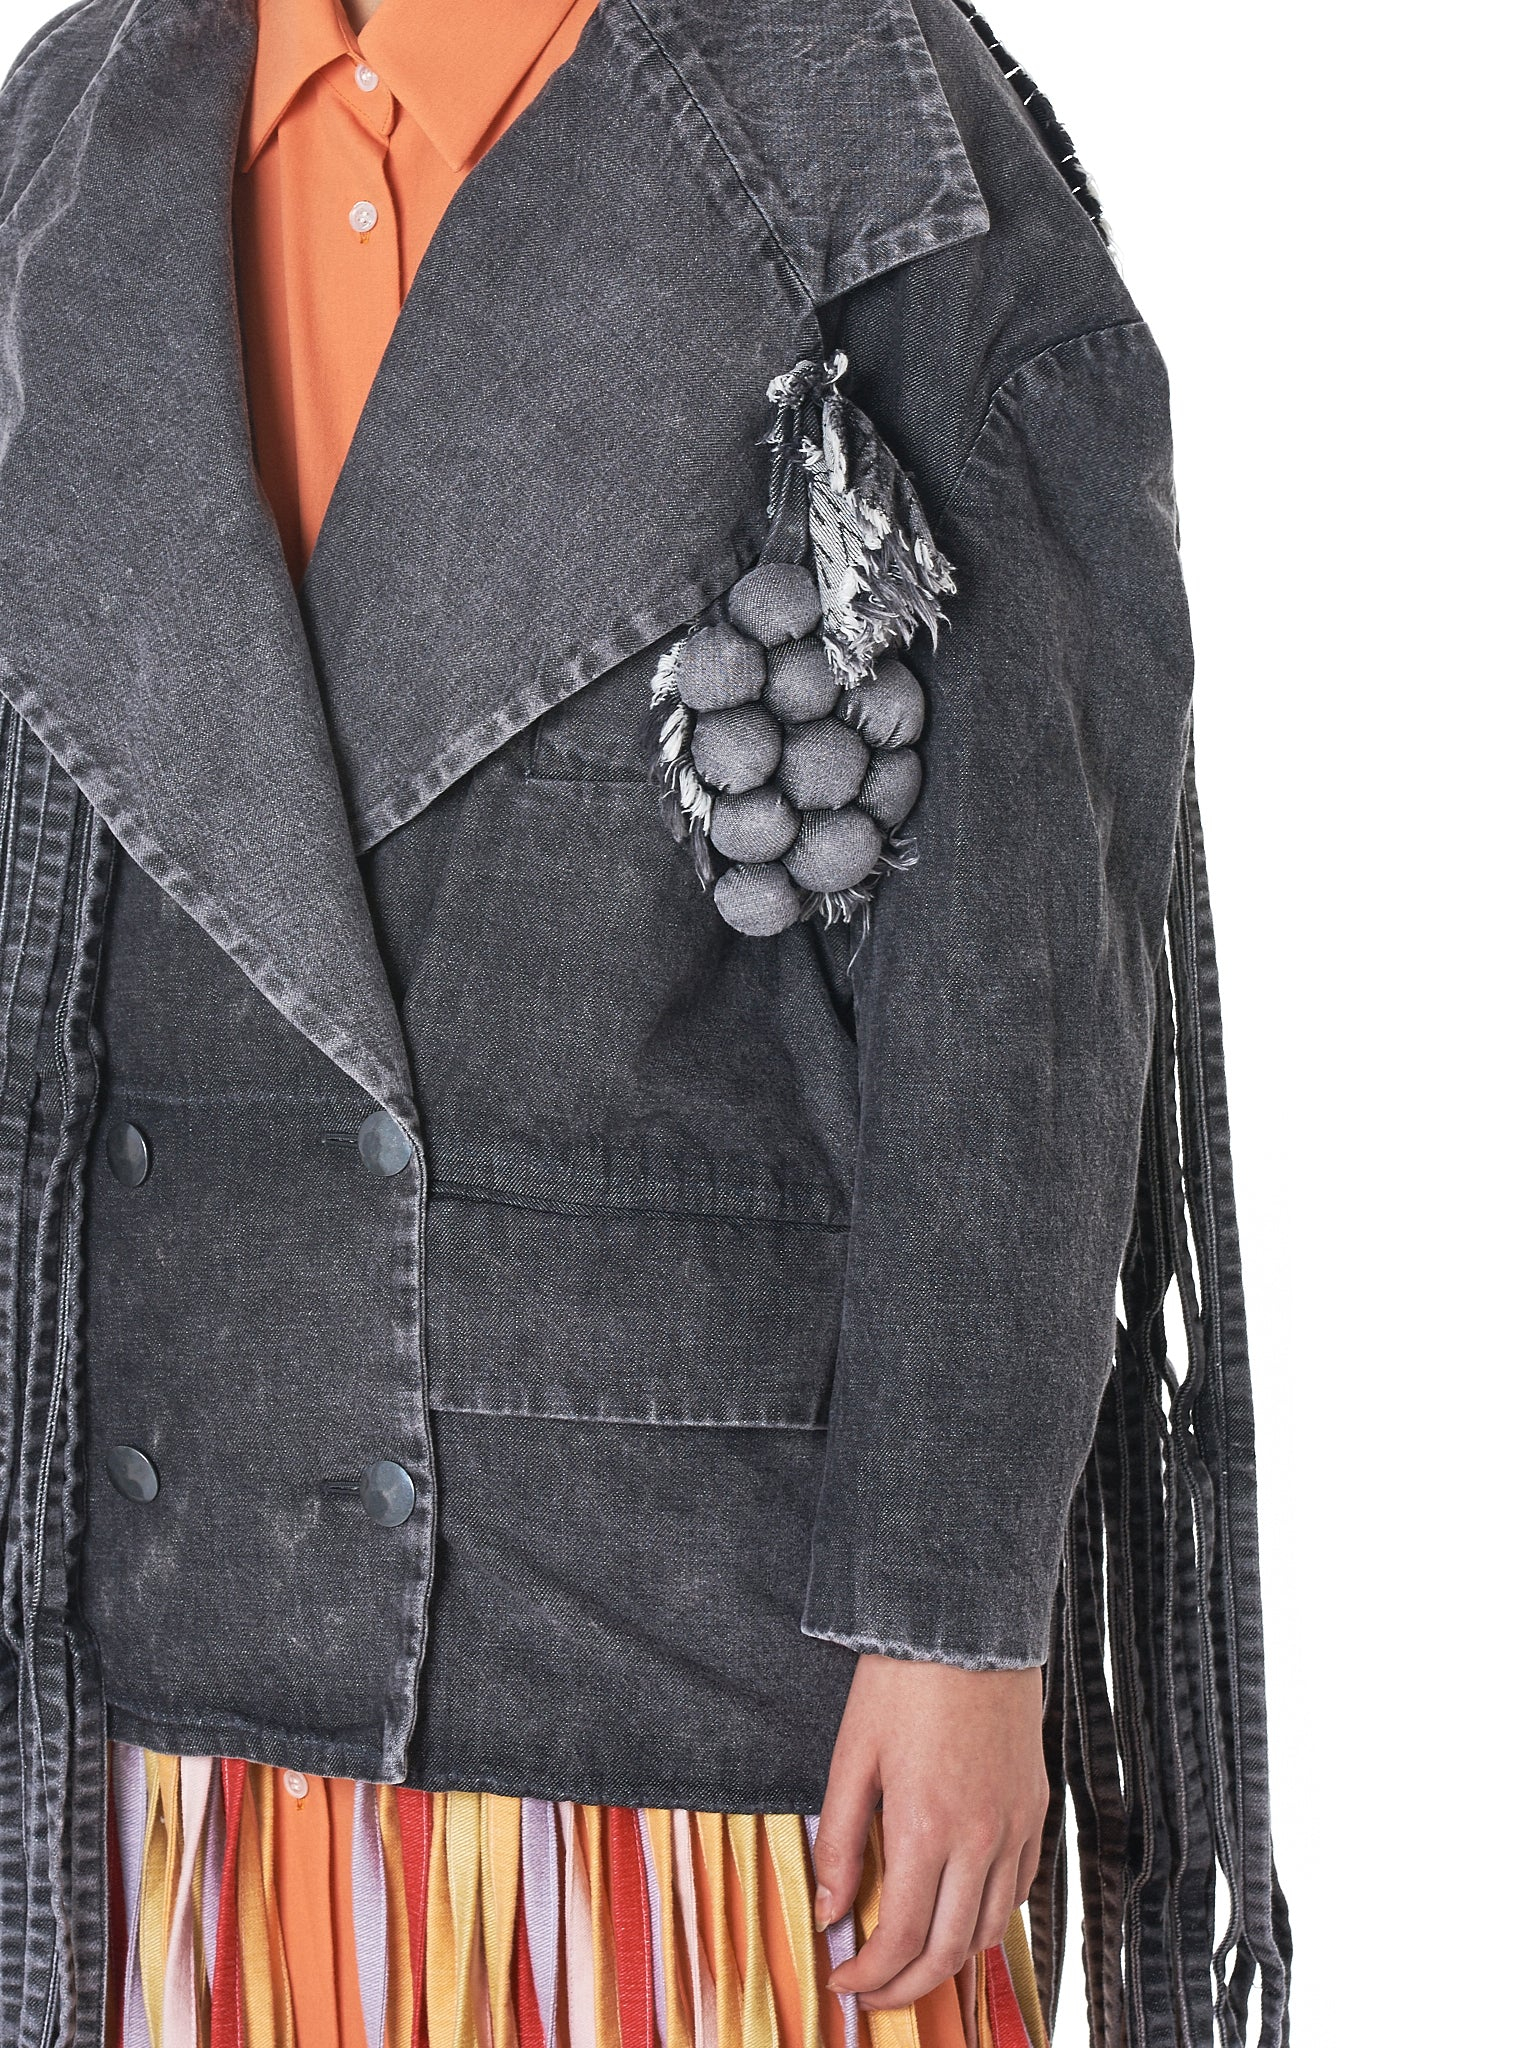 Jenny Fax Denim Jacket - Hlorenzo Detail 4